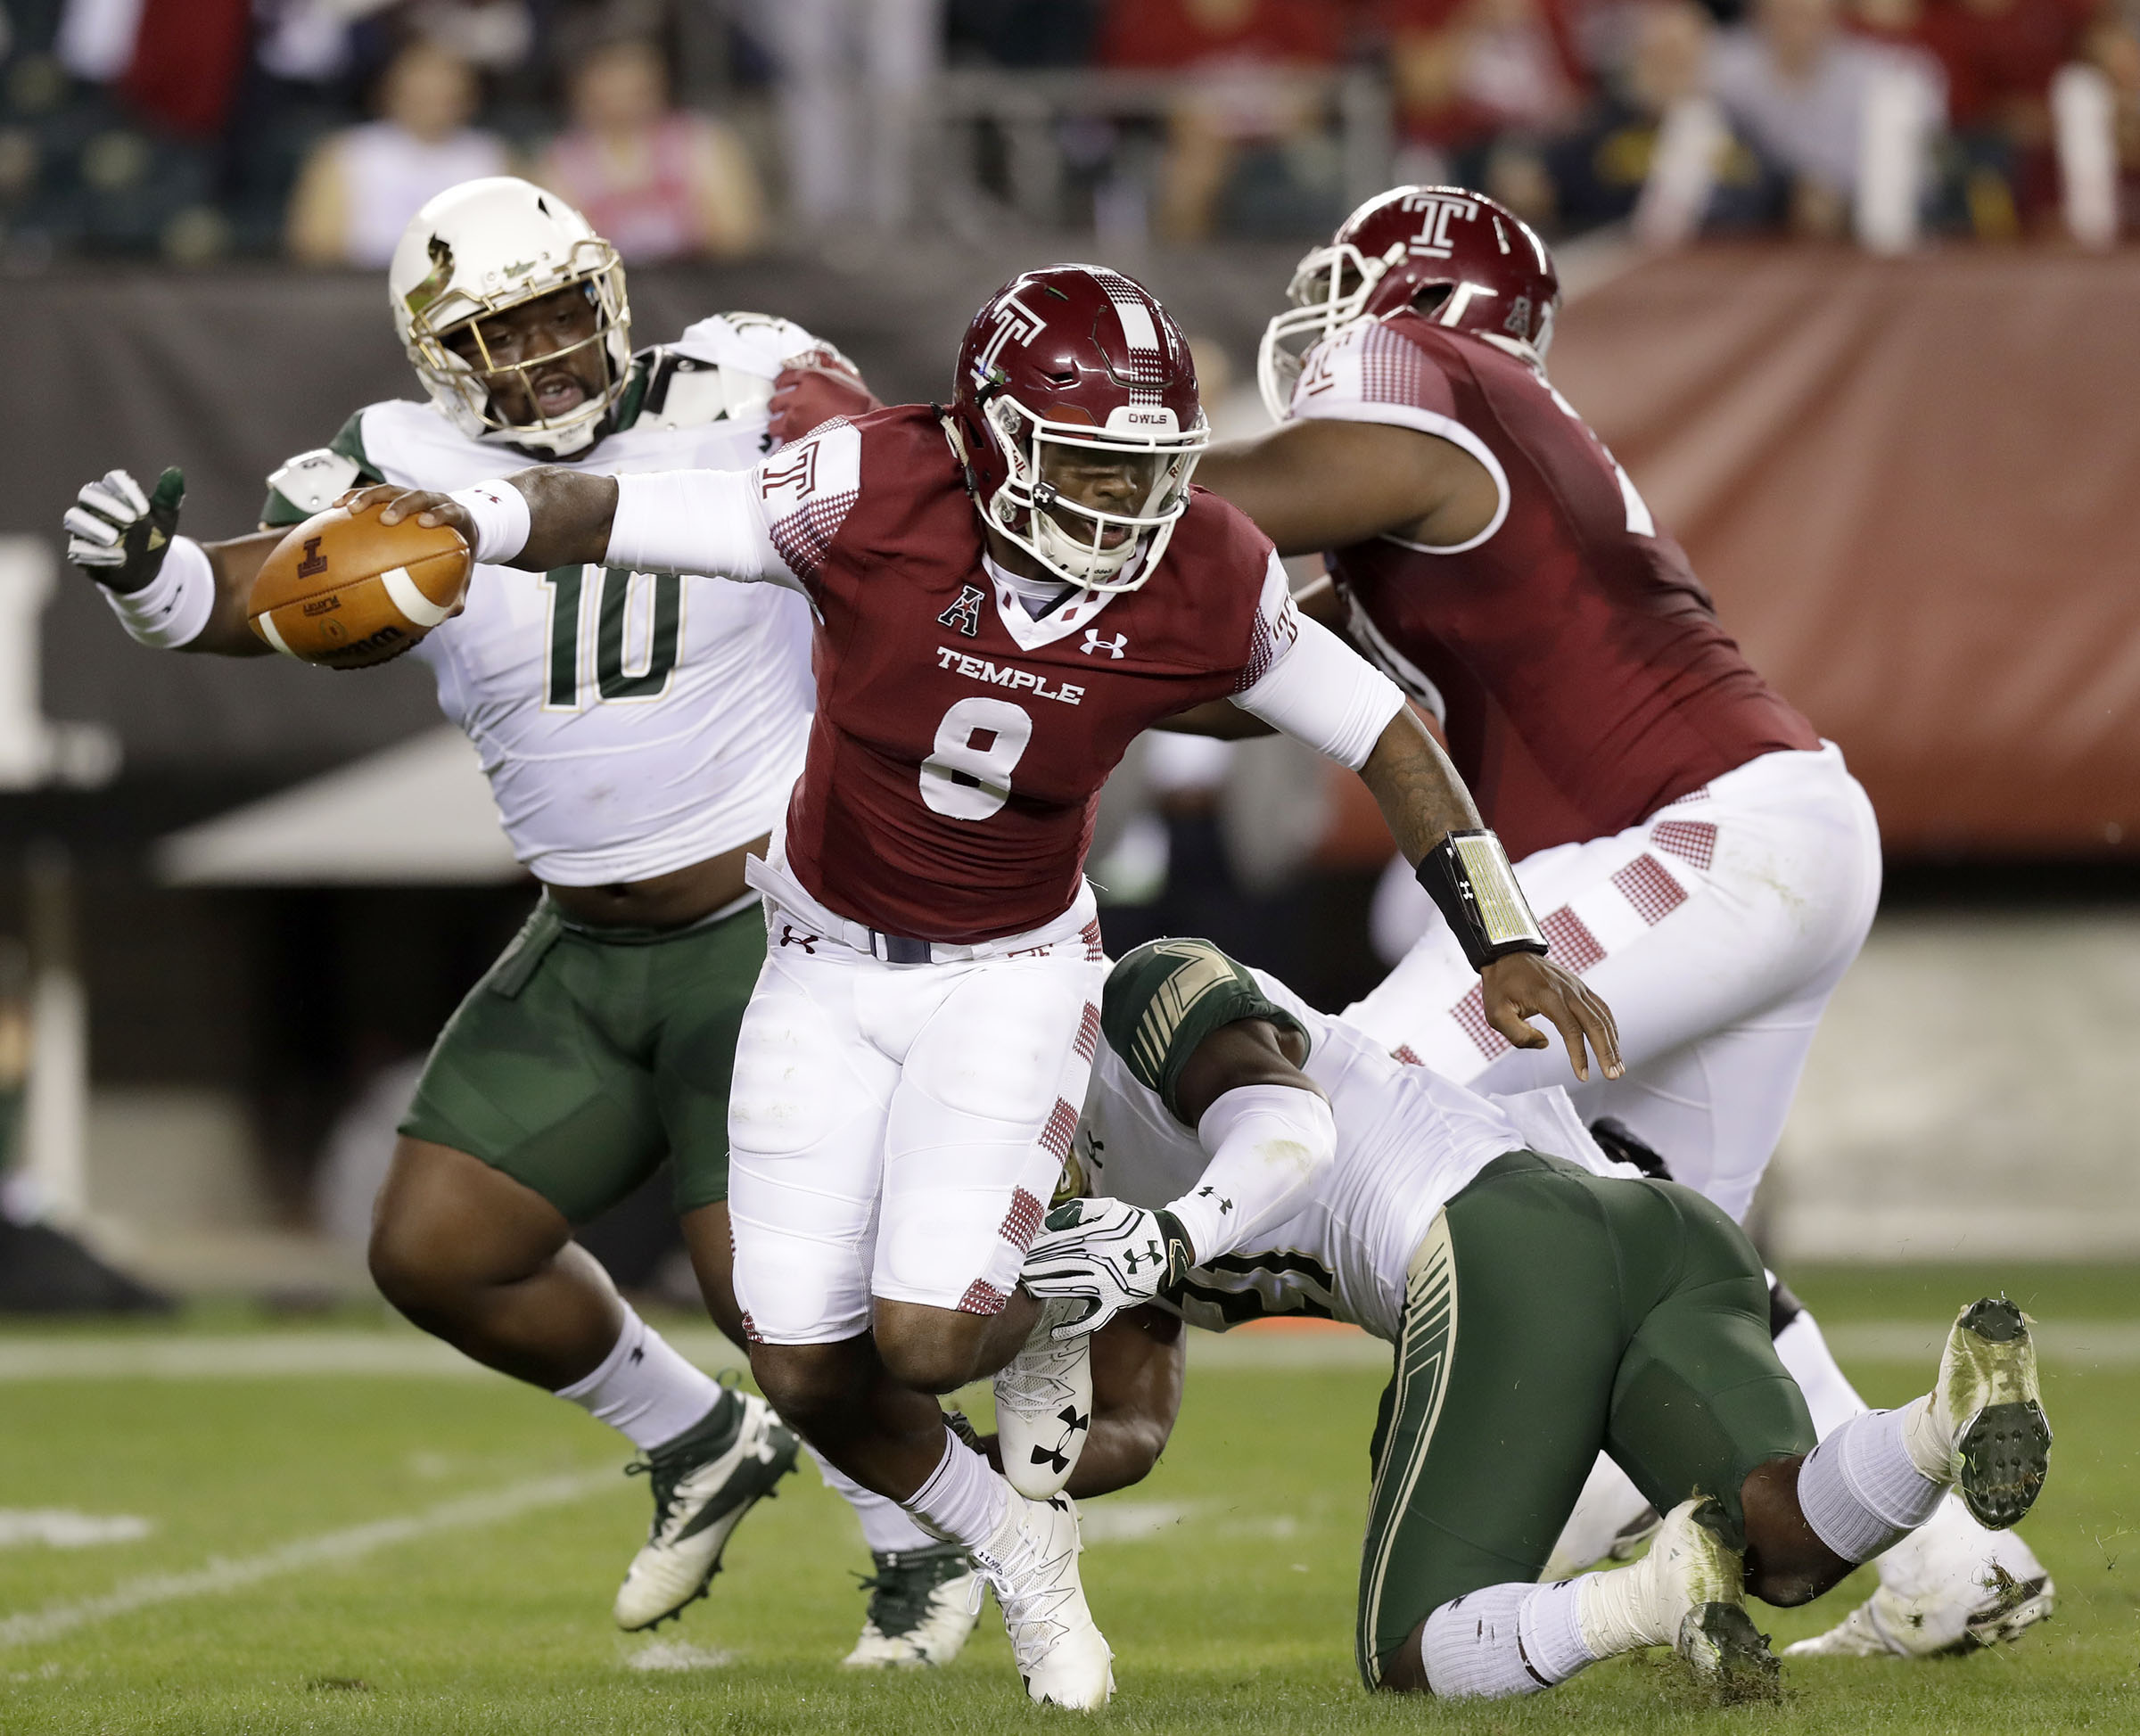 Temple quarterback Phillip Walker escapea from South Florida's Khalid McGee as Deadrin Senat, left, gets blocked by Temple offensive lineman Jovahn Fair during the first quarter of an NCAA college football game Friday, Oct. 21, 2016, in Philadelphia. (Yong Kim/The Philadelphia Inquirer via AP)